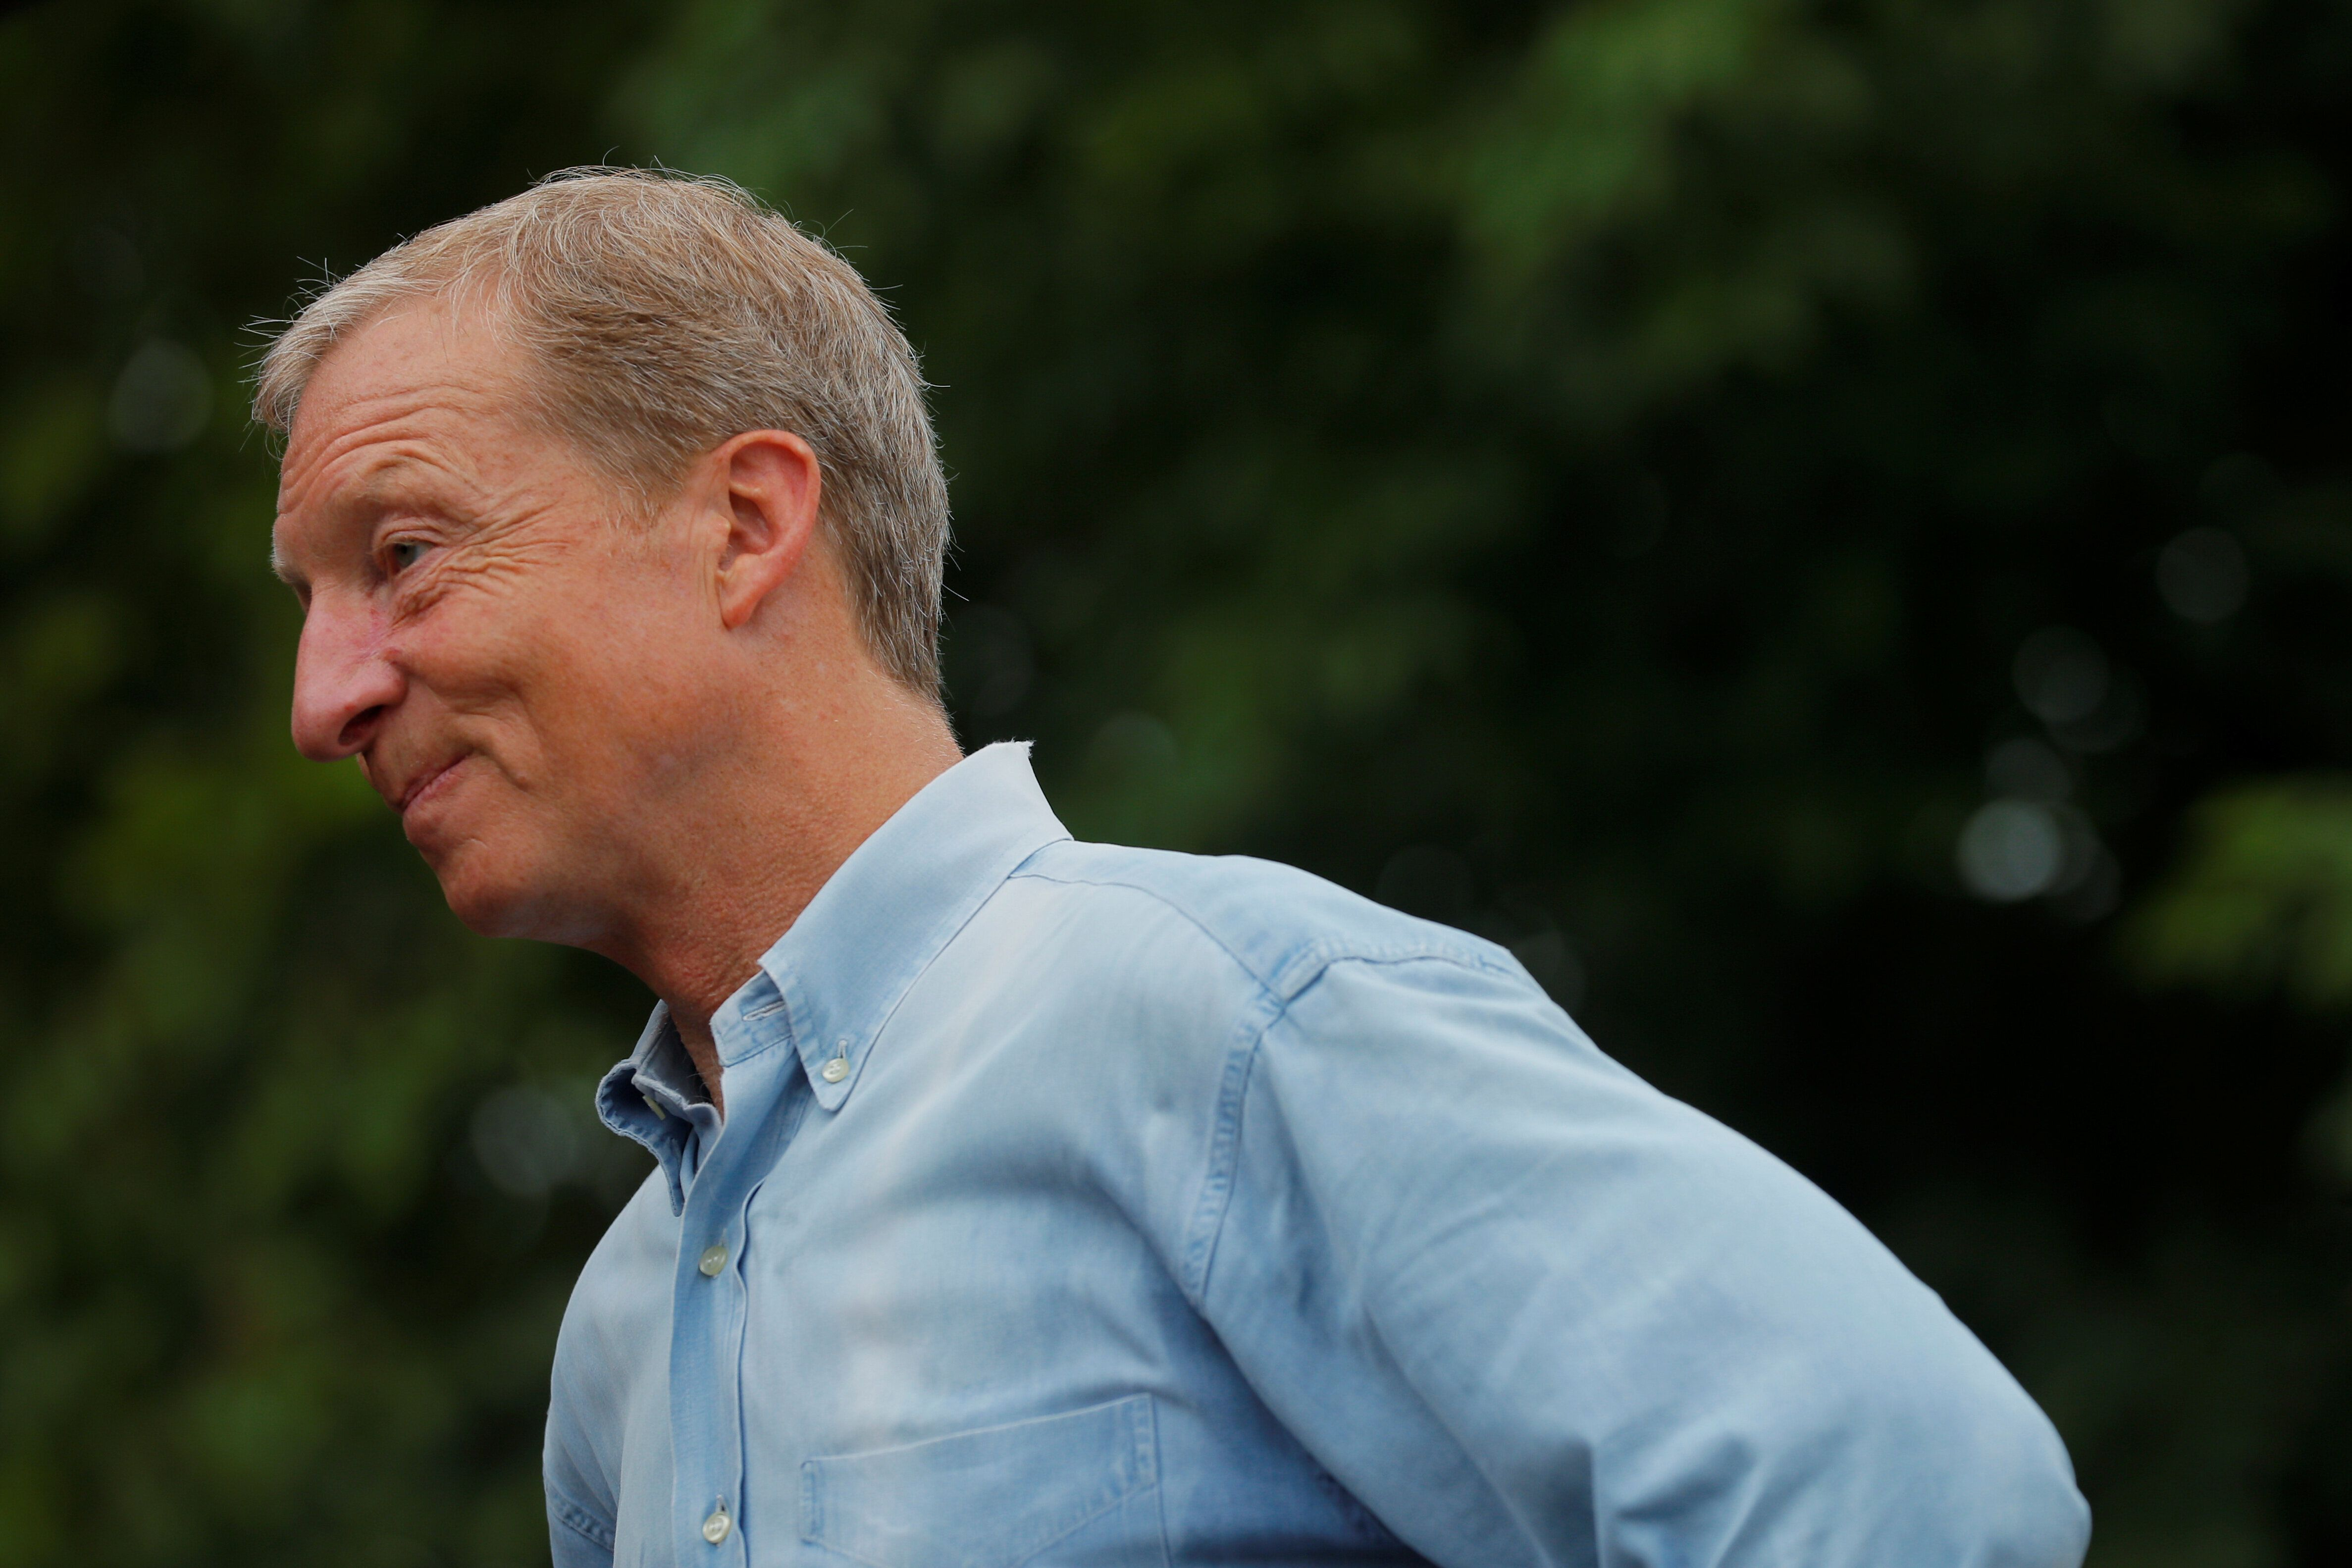 Tom Steyer waits to speak at the Iowa State Fair in Des Moines in August. He has since dropped out of the presidential race.